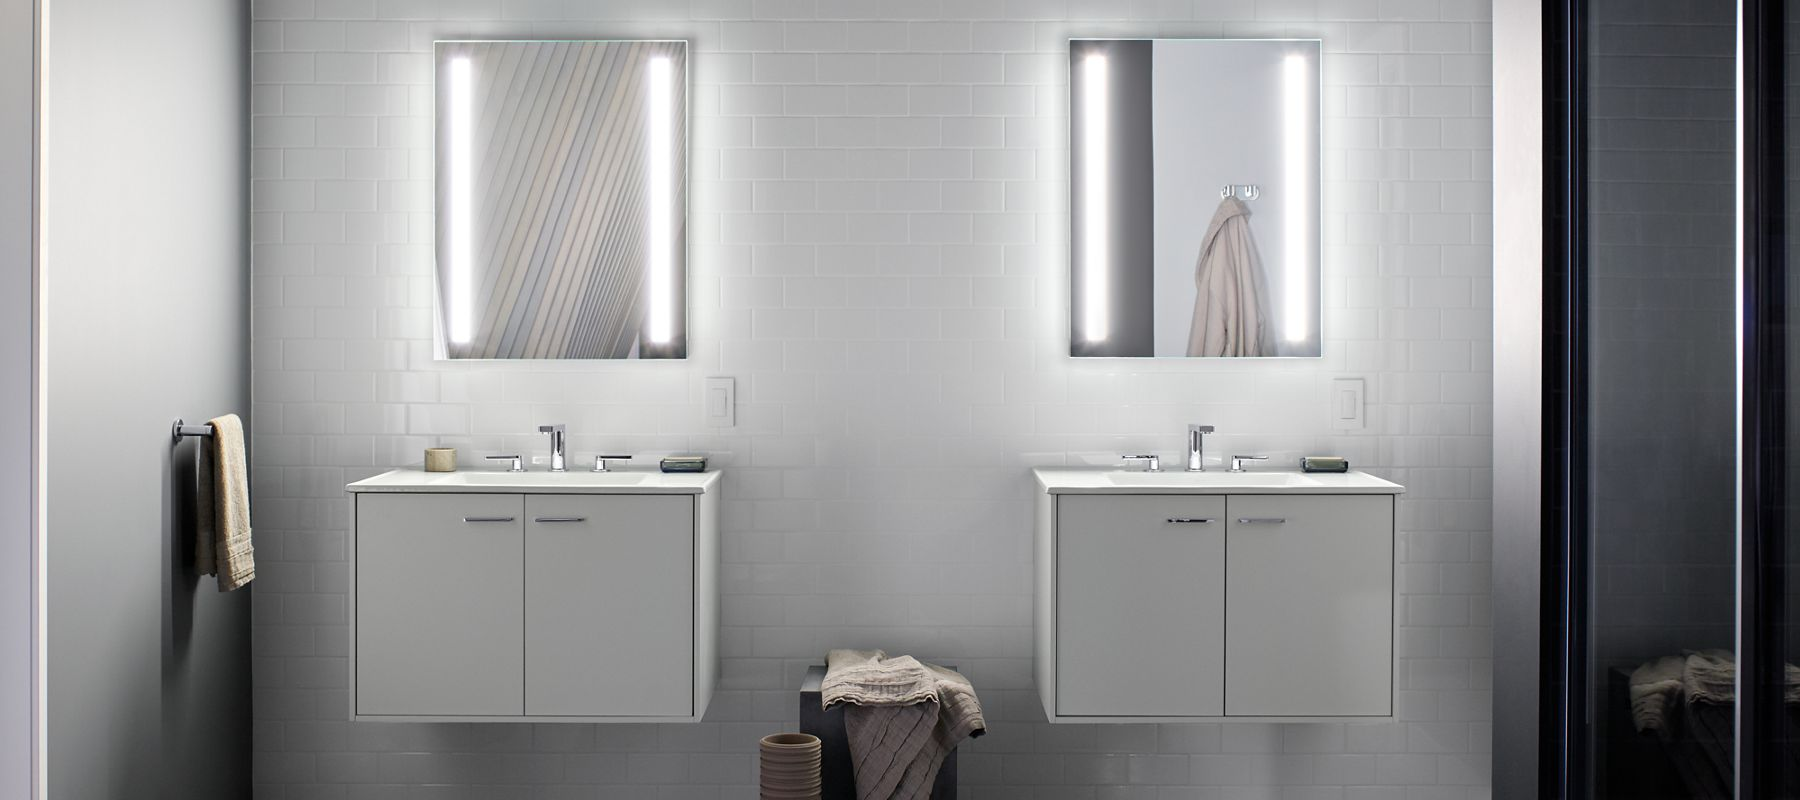 Bathroom mirrors bathroom kohler - Bathroom mirrors and medicine cabinets ...